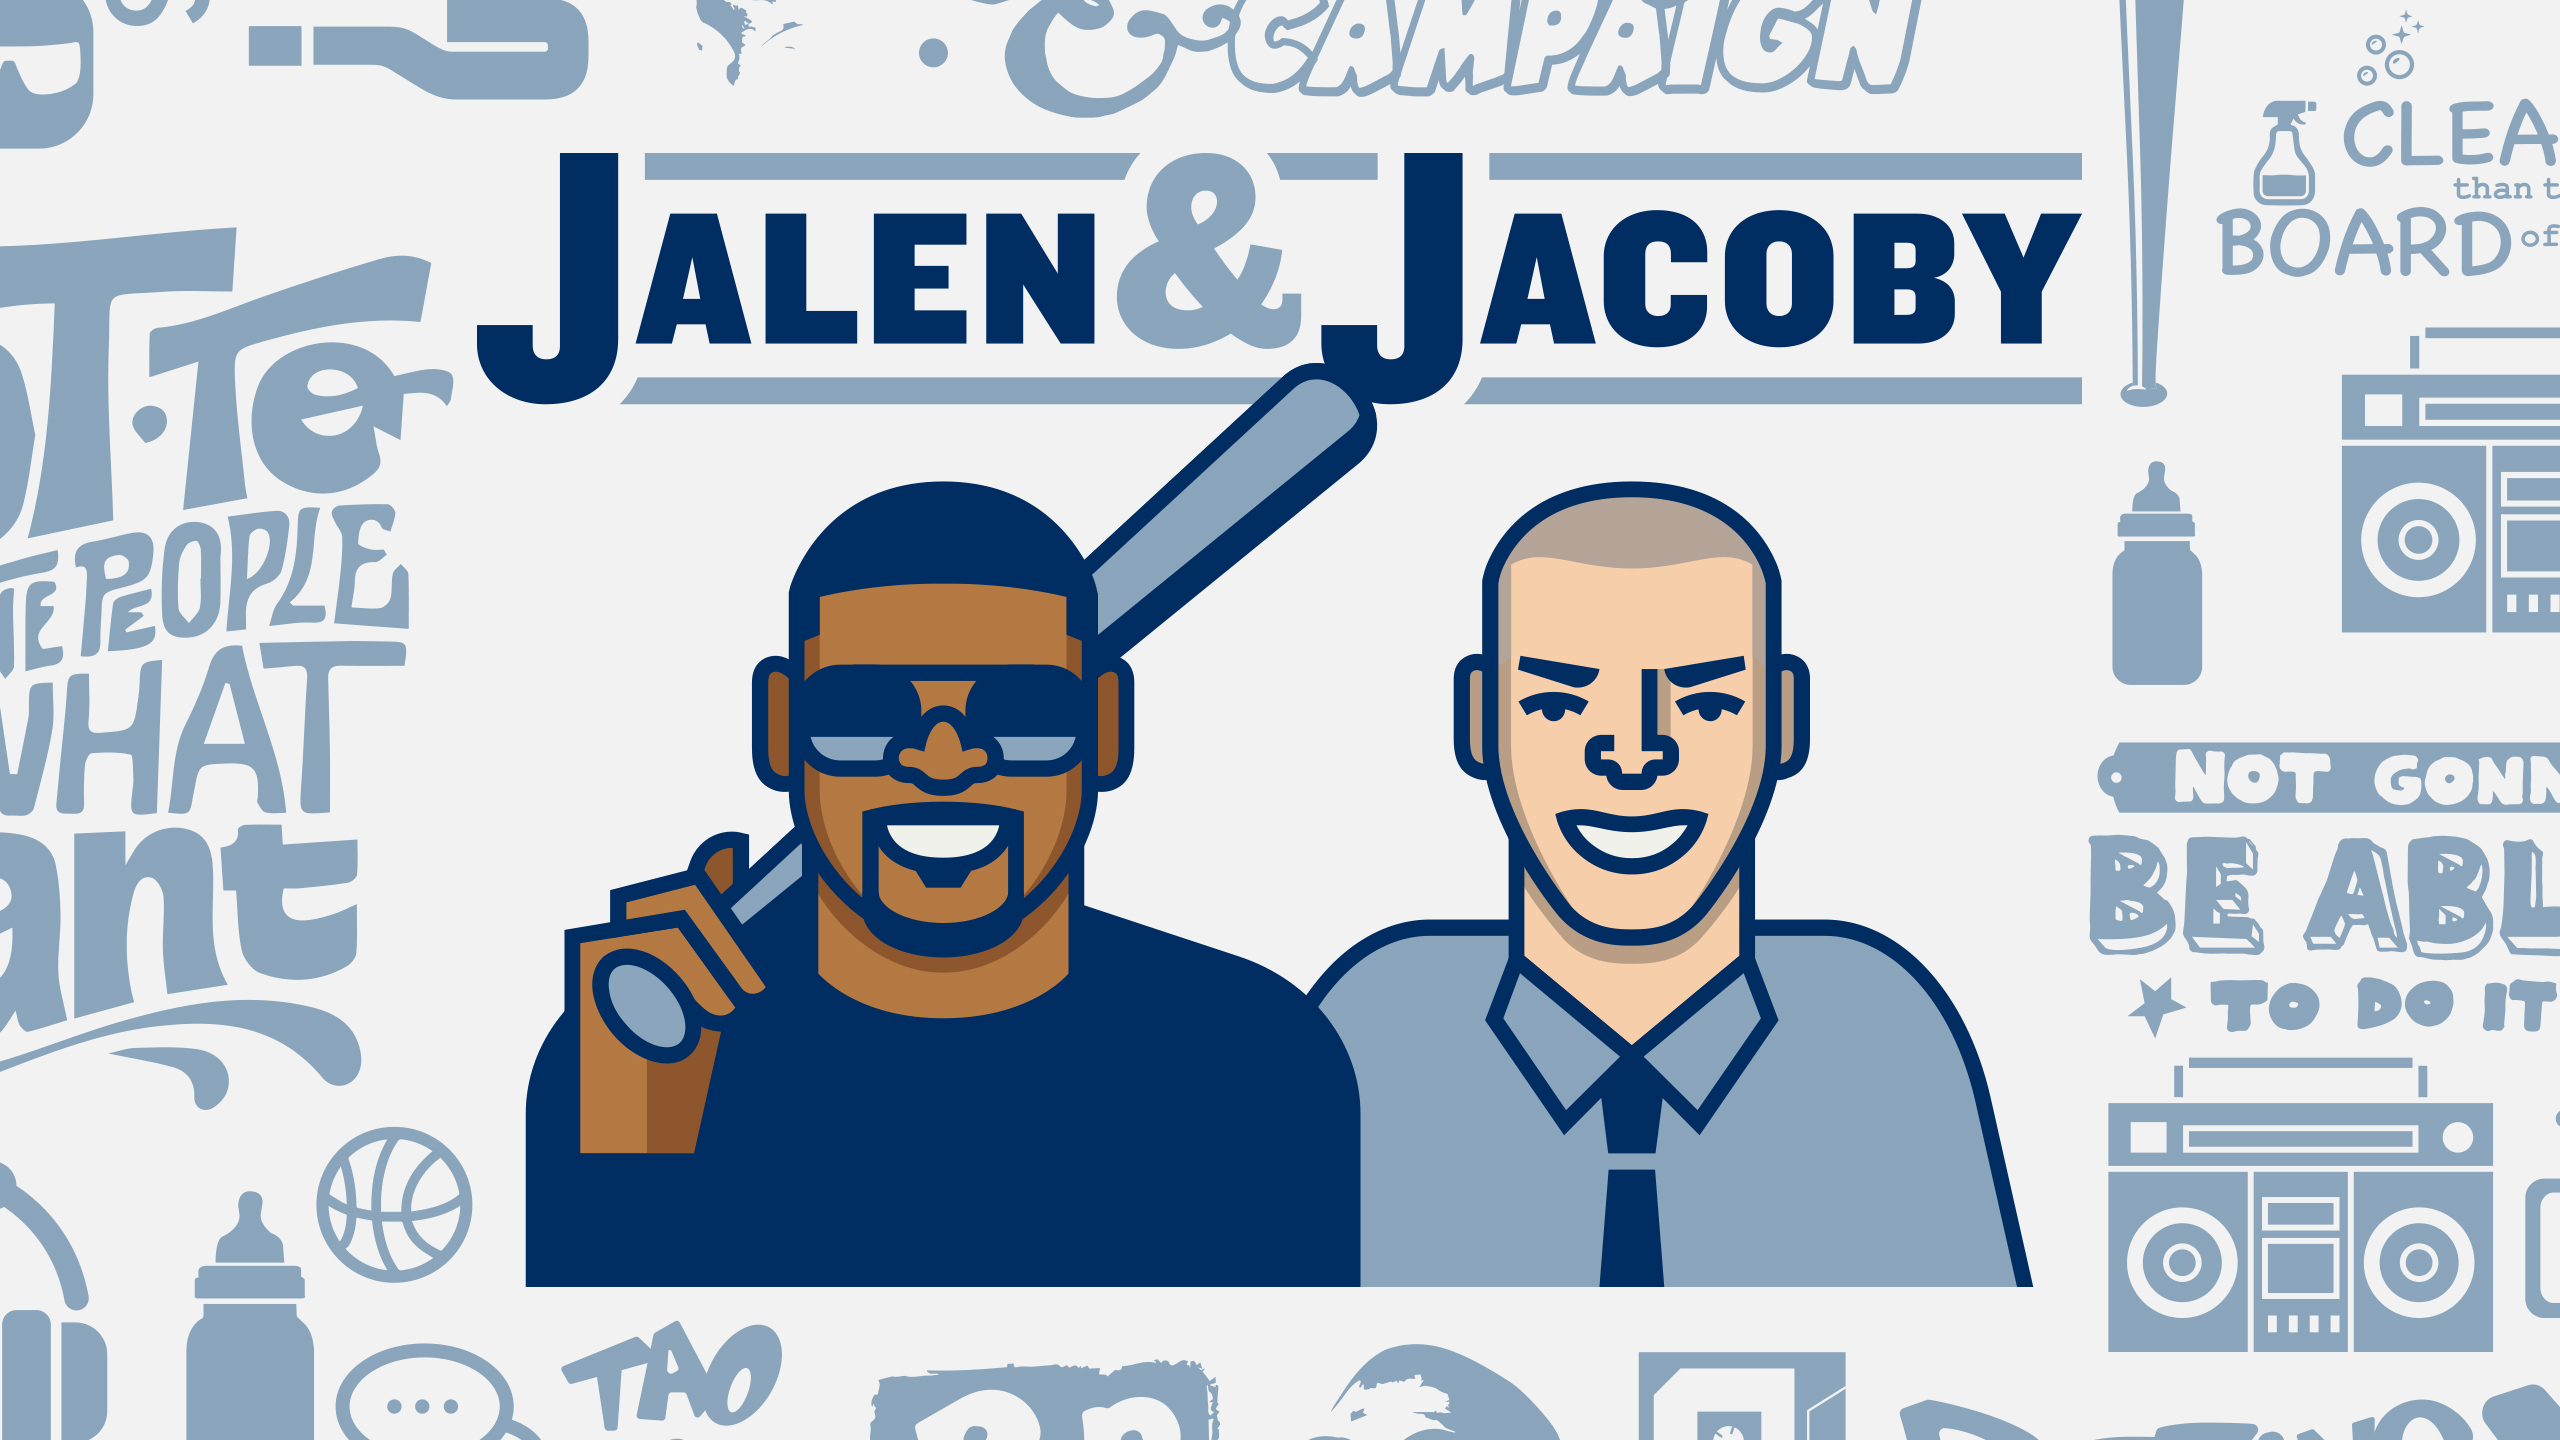 Wed, 11/14 - Jalen & Jacoby